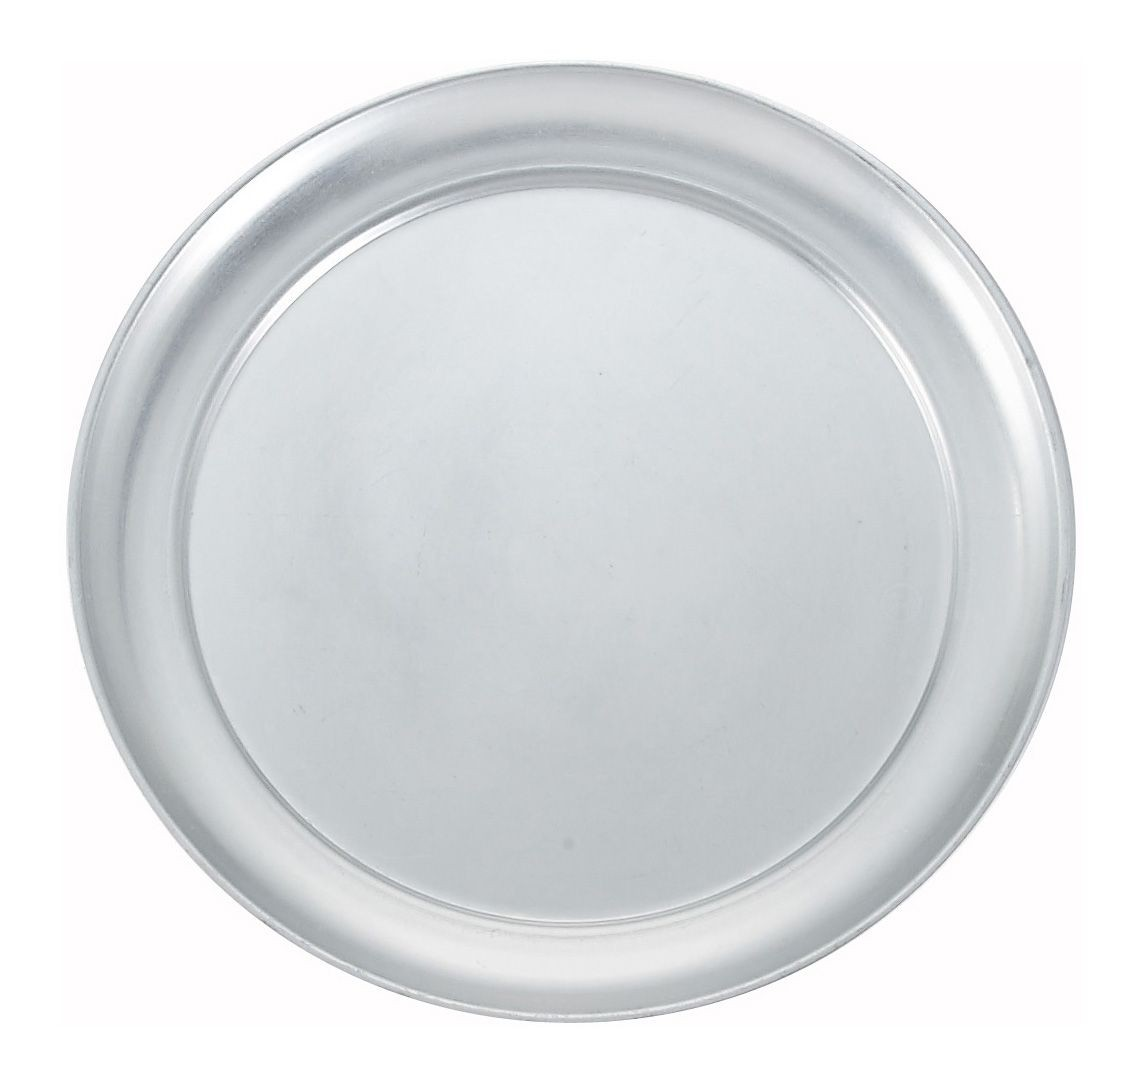 Wide-Rimmed Aluminum Pizza Pan - 10